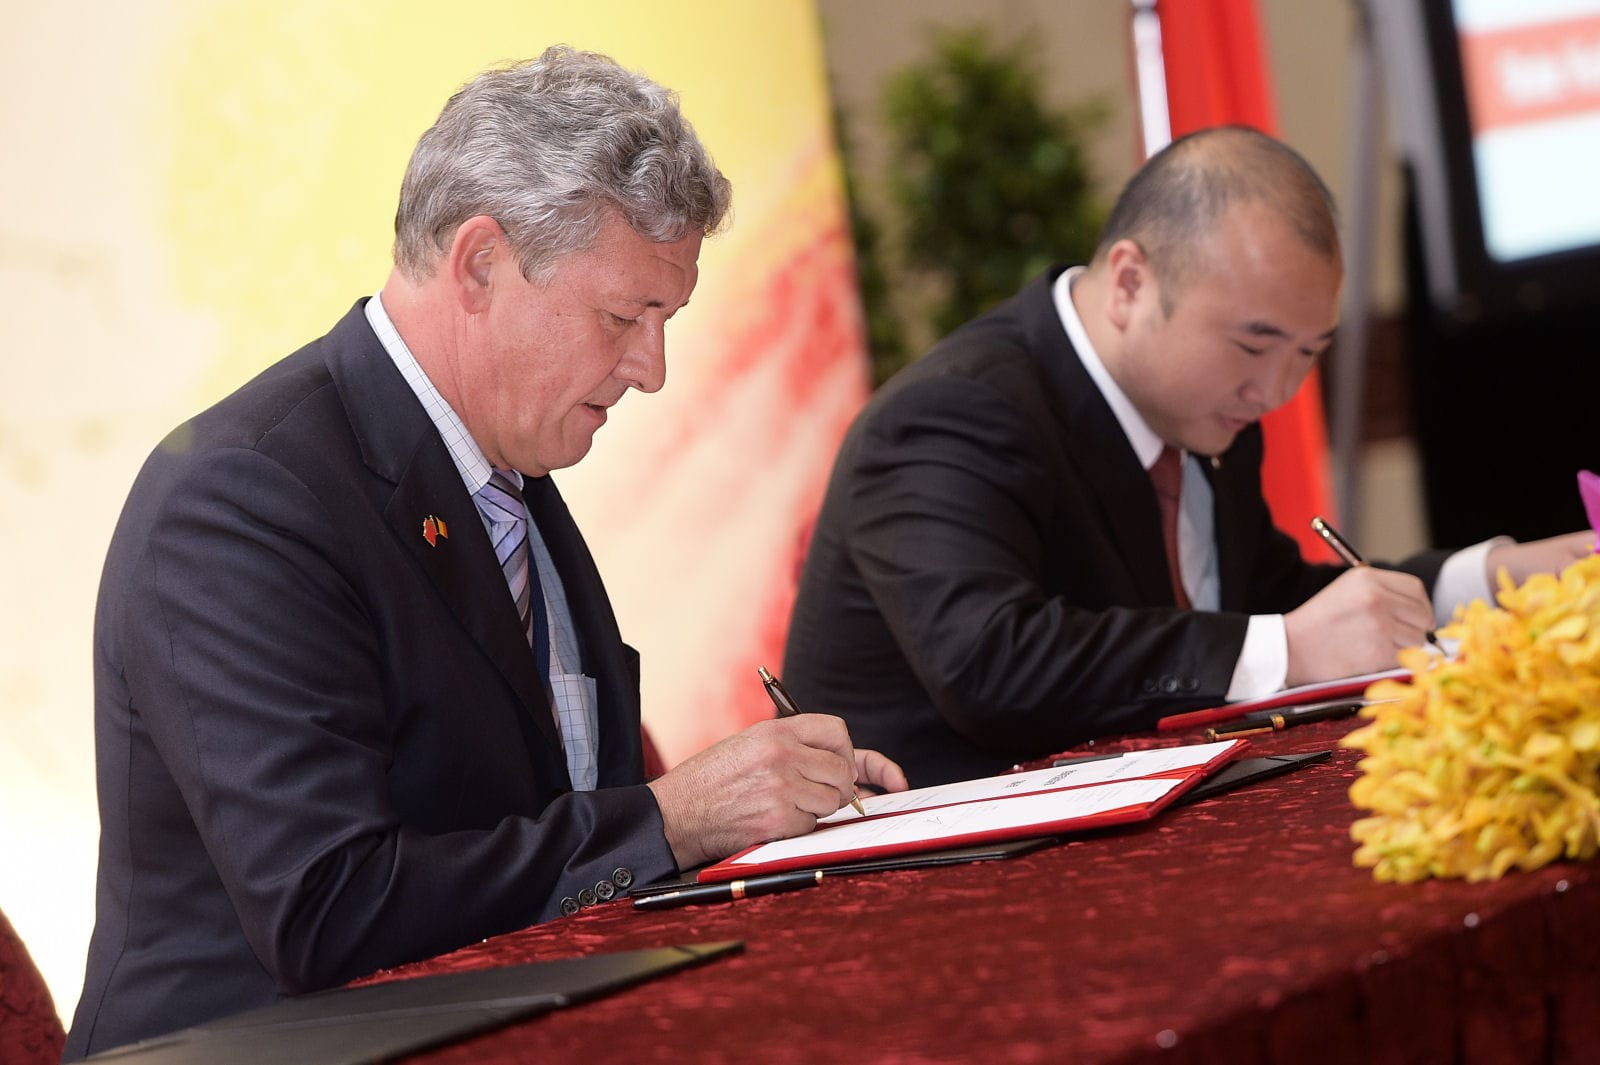 20150626 - SUZHOU, CHINA: Zingametall, Primo Corporation, represented by Bruno Savereys and Lufeng Baolihua New Energy Electric Power, represented by Gordon Chan and Ye Fanrong pictured during a signing ceremony in Shenzhen on the seventh day of a royal visit to China, Friday 26 June 2015, in China. BELGA PHOTO YORICK JANSENS